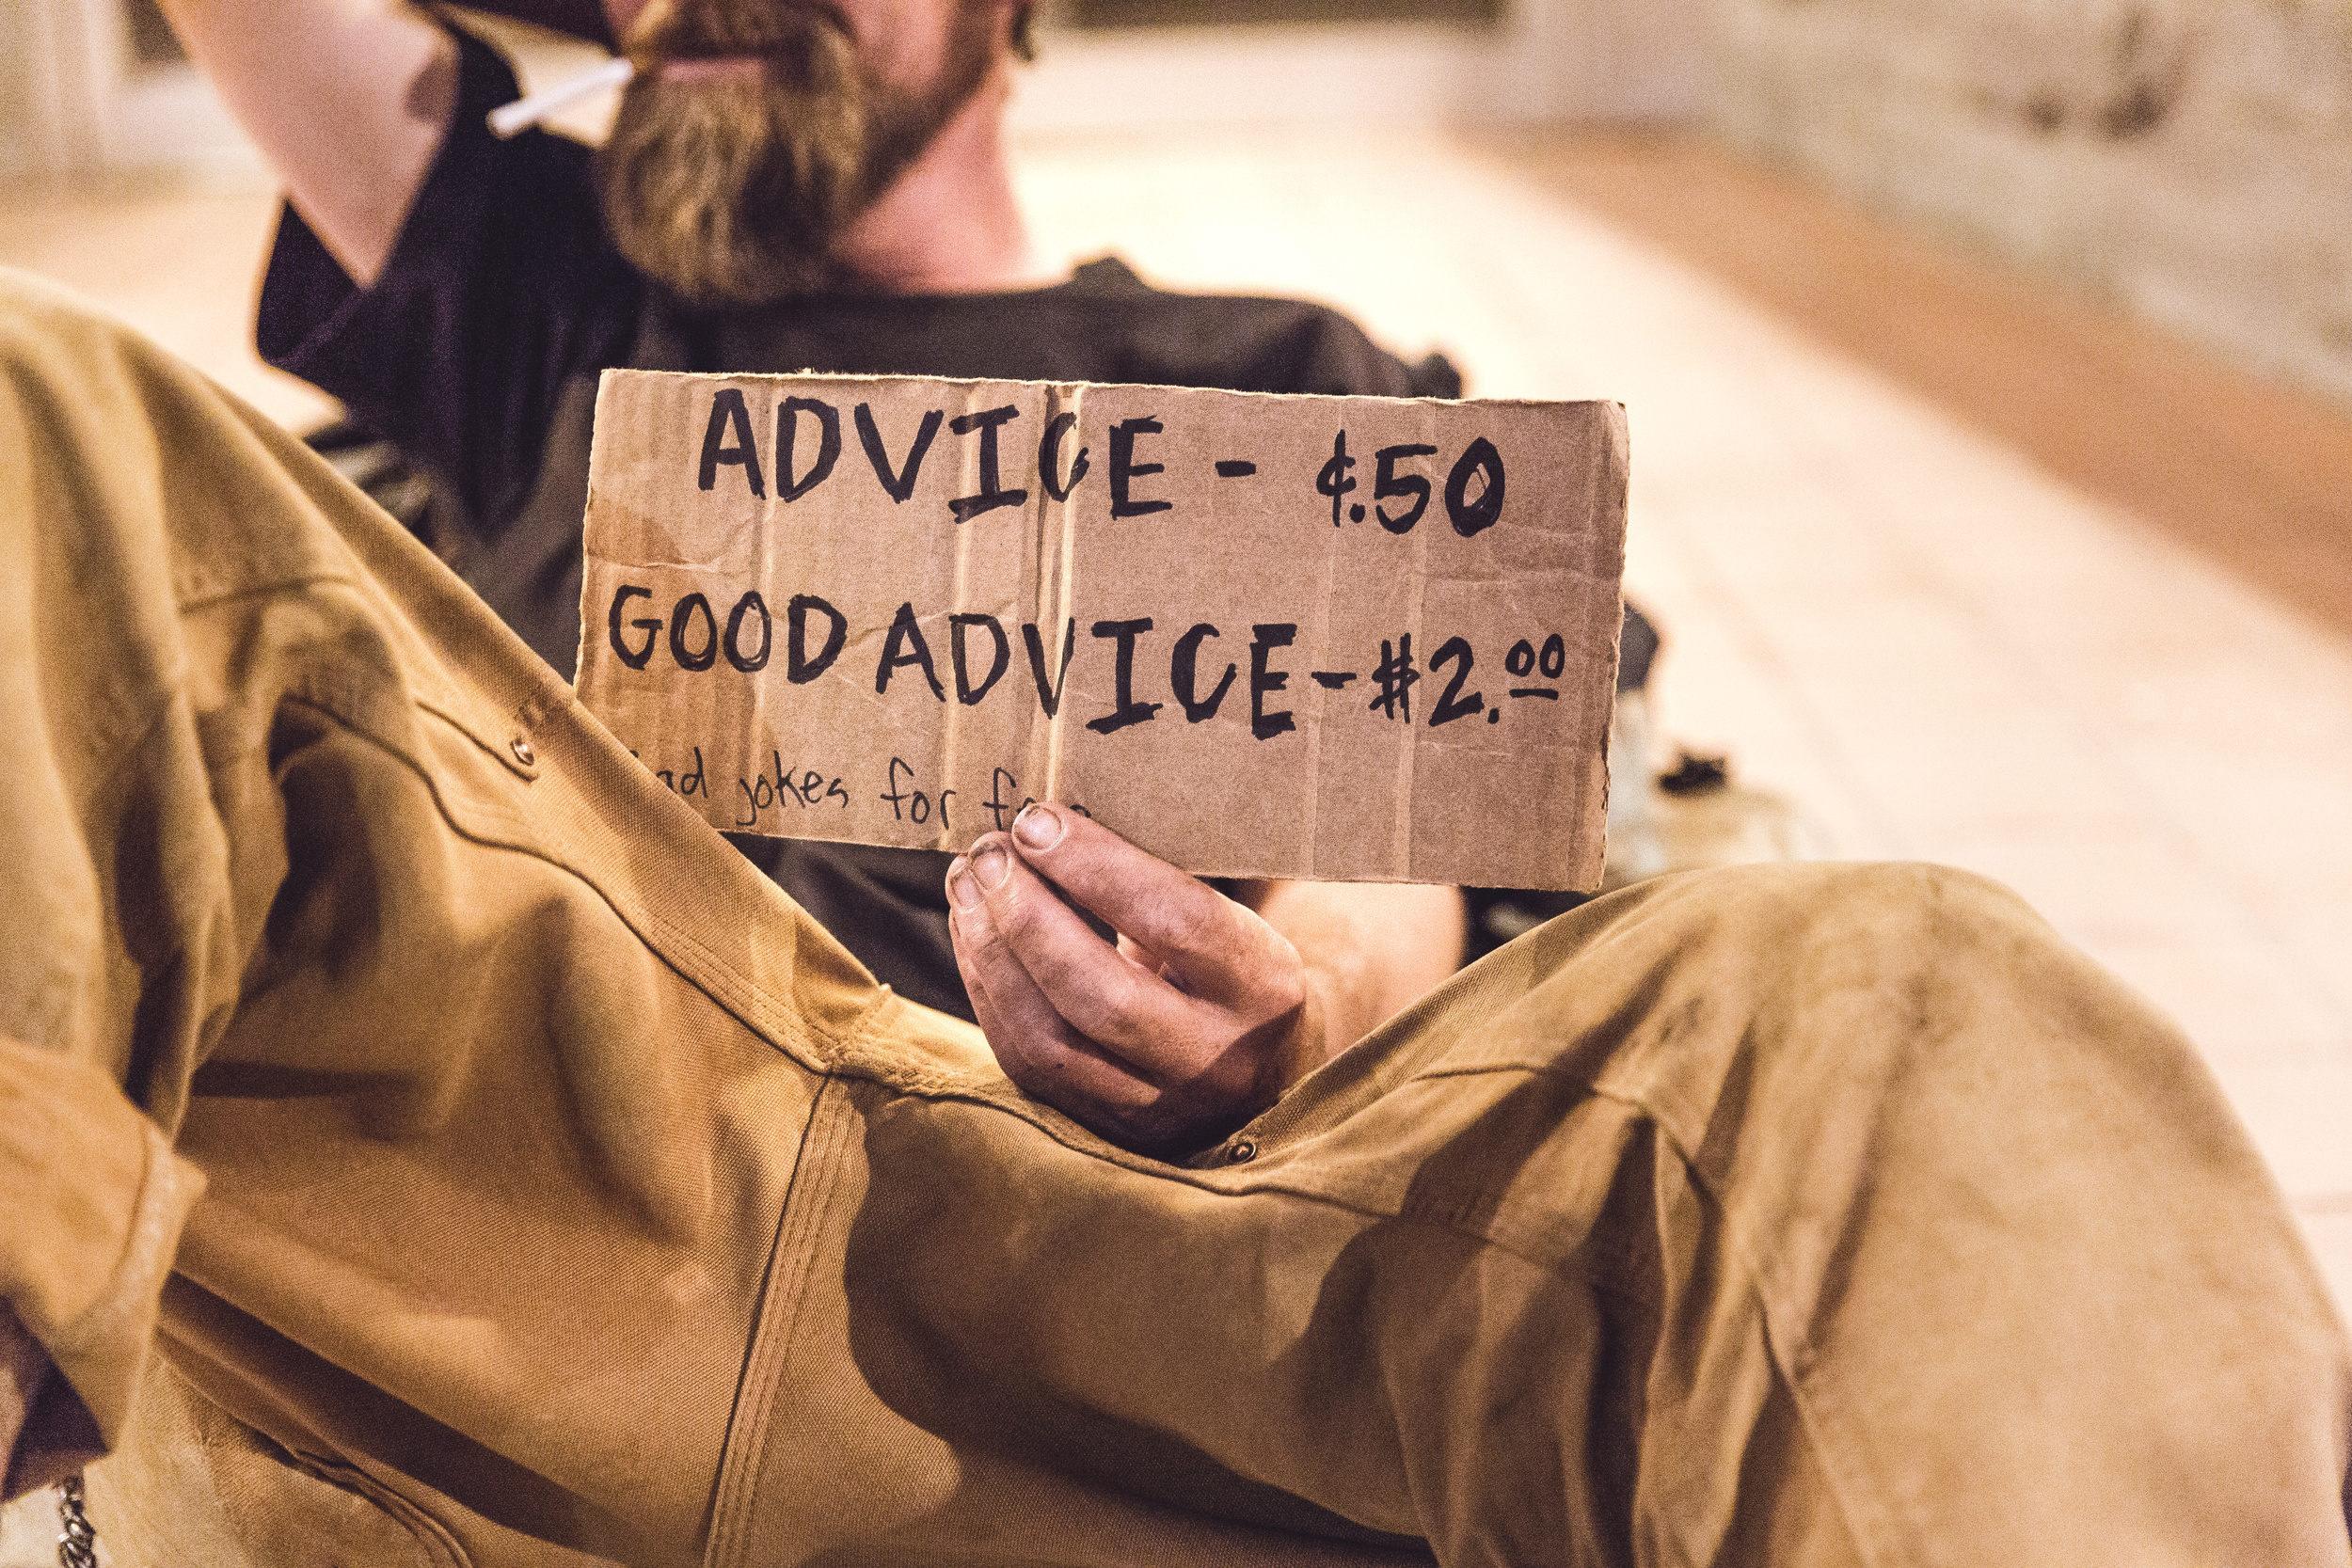 man with advice sign on cardboard, counseling in columbia mo